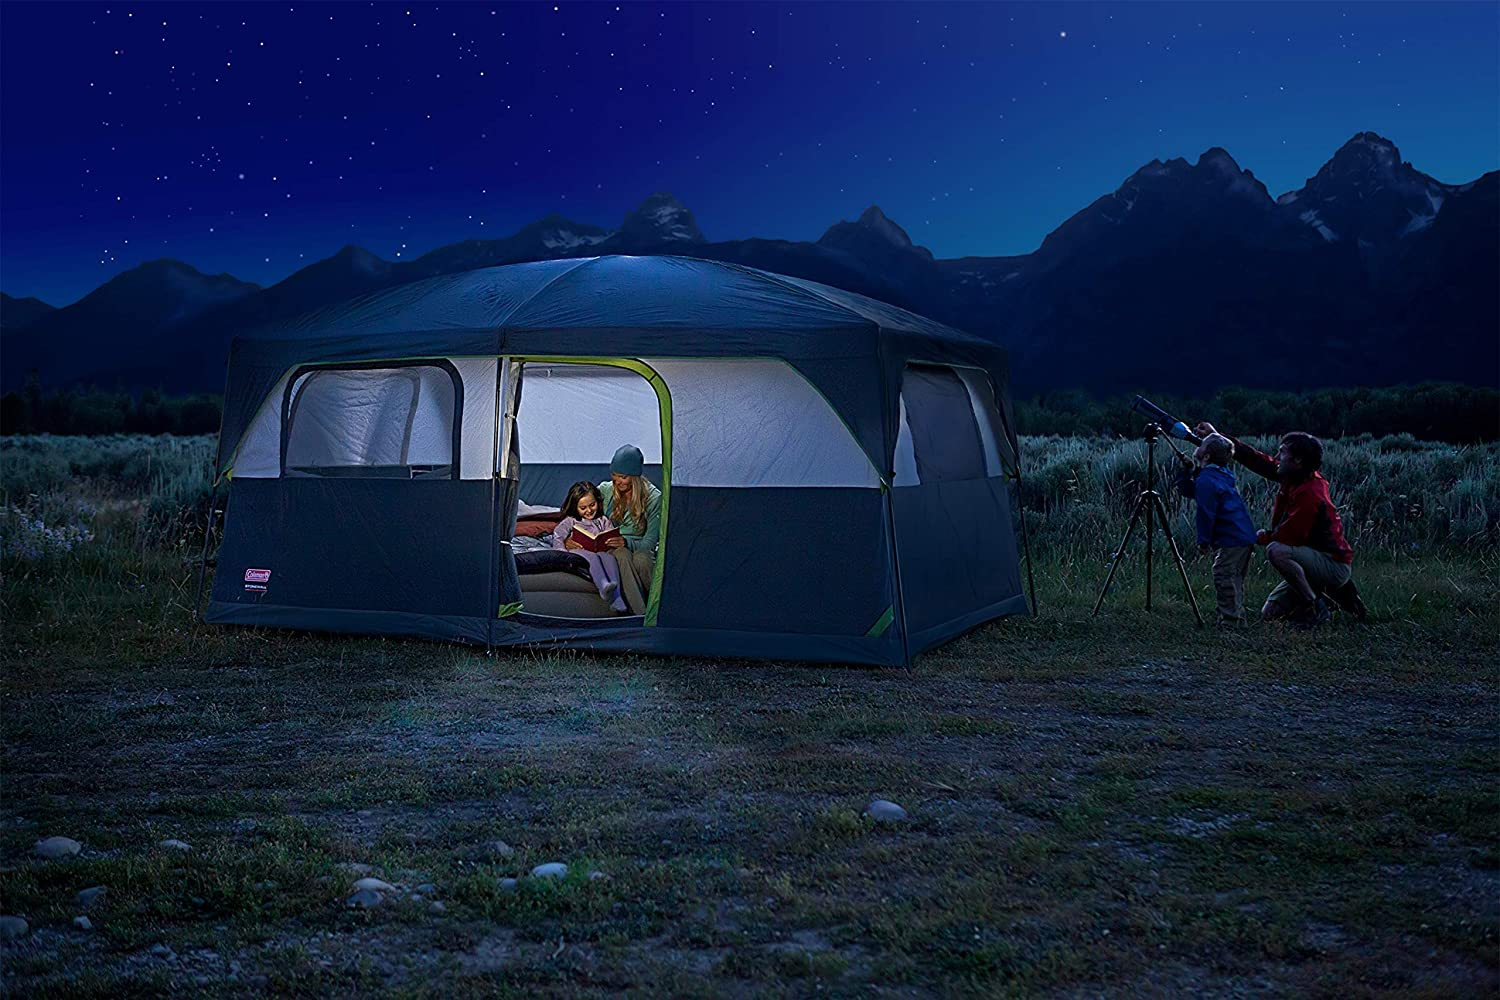 9-Person Cabin Tent Review